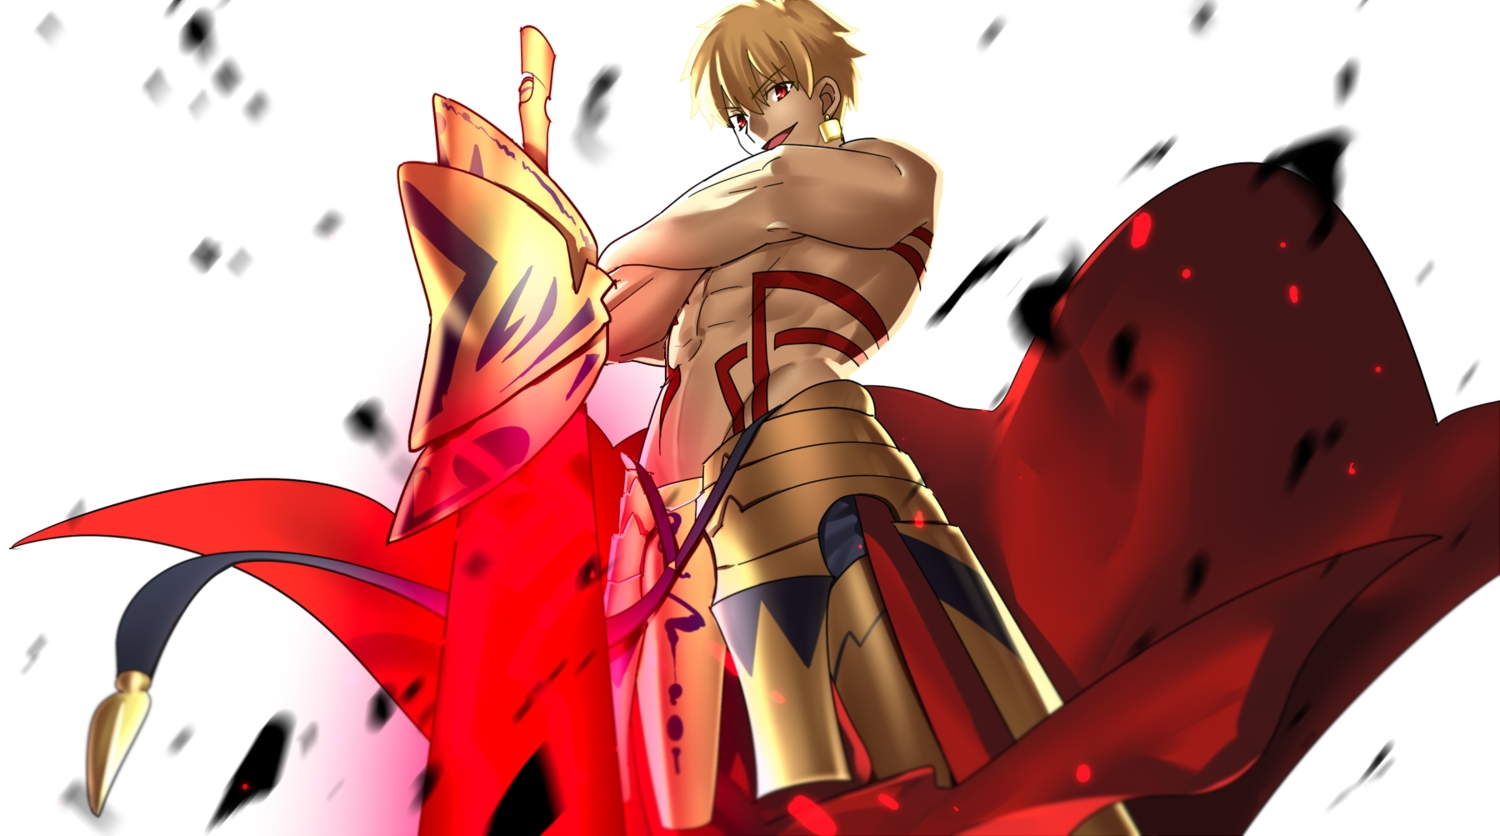 all_male armor blonde_hair fate_(series) fate/stay_night gilgamesh magic male red_eyes short_hair sword tagme_(artist) tattoo topless weapon